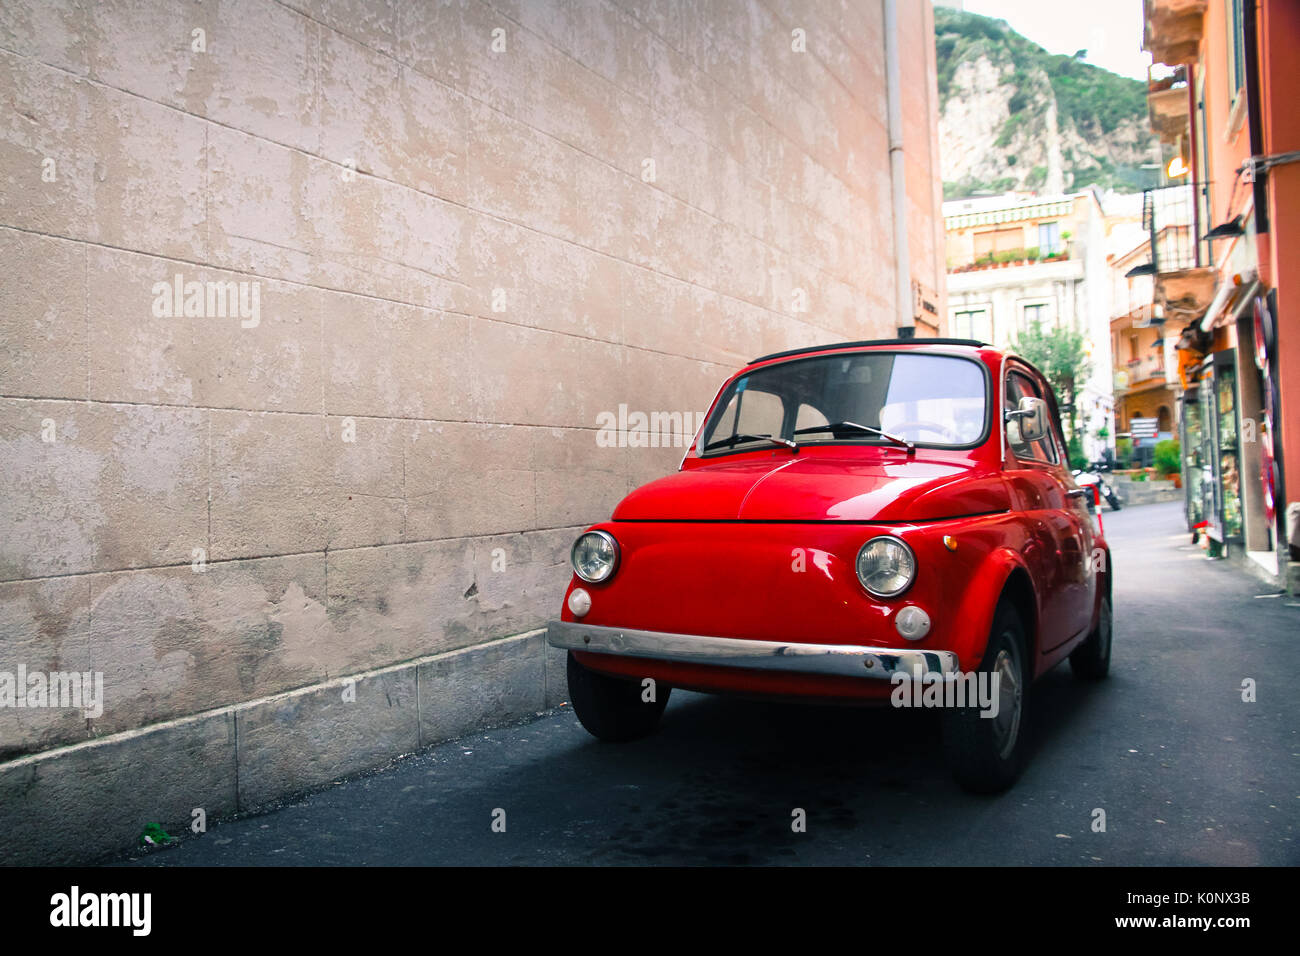 Red old well-preserved vintage Italian classic car parked in a small alley in an Italian Sicilian city with a large empty stone wall in the left side  - Stock Image